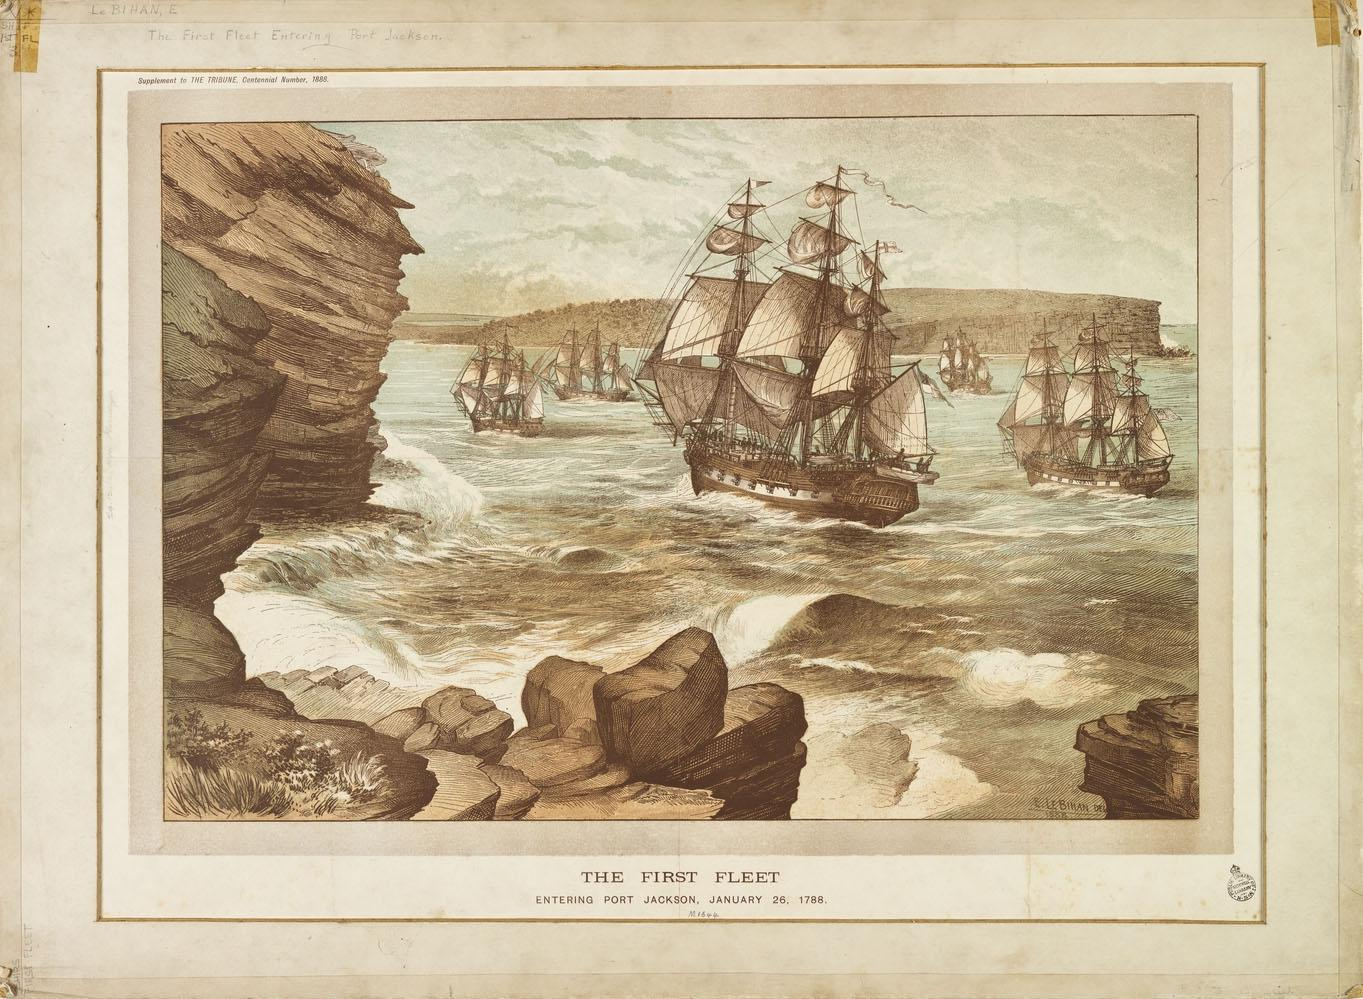 The First Fleet entering Port Jackson, January 26, 1788, by E. Le Bihan. Drawn in 1888